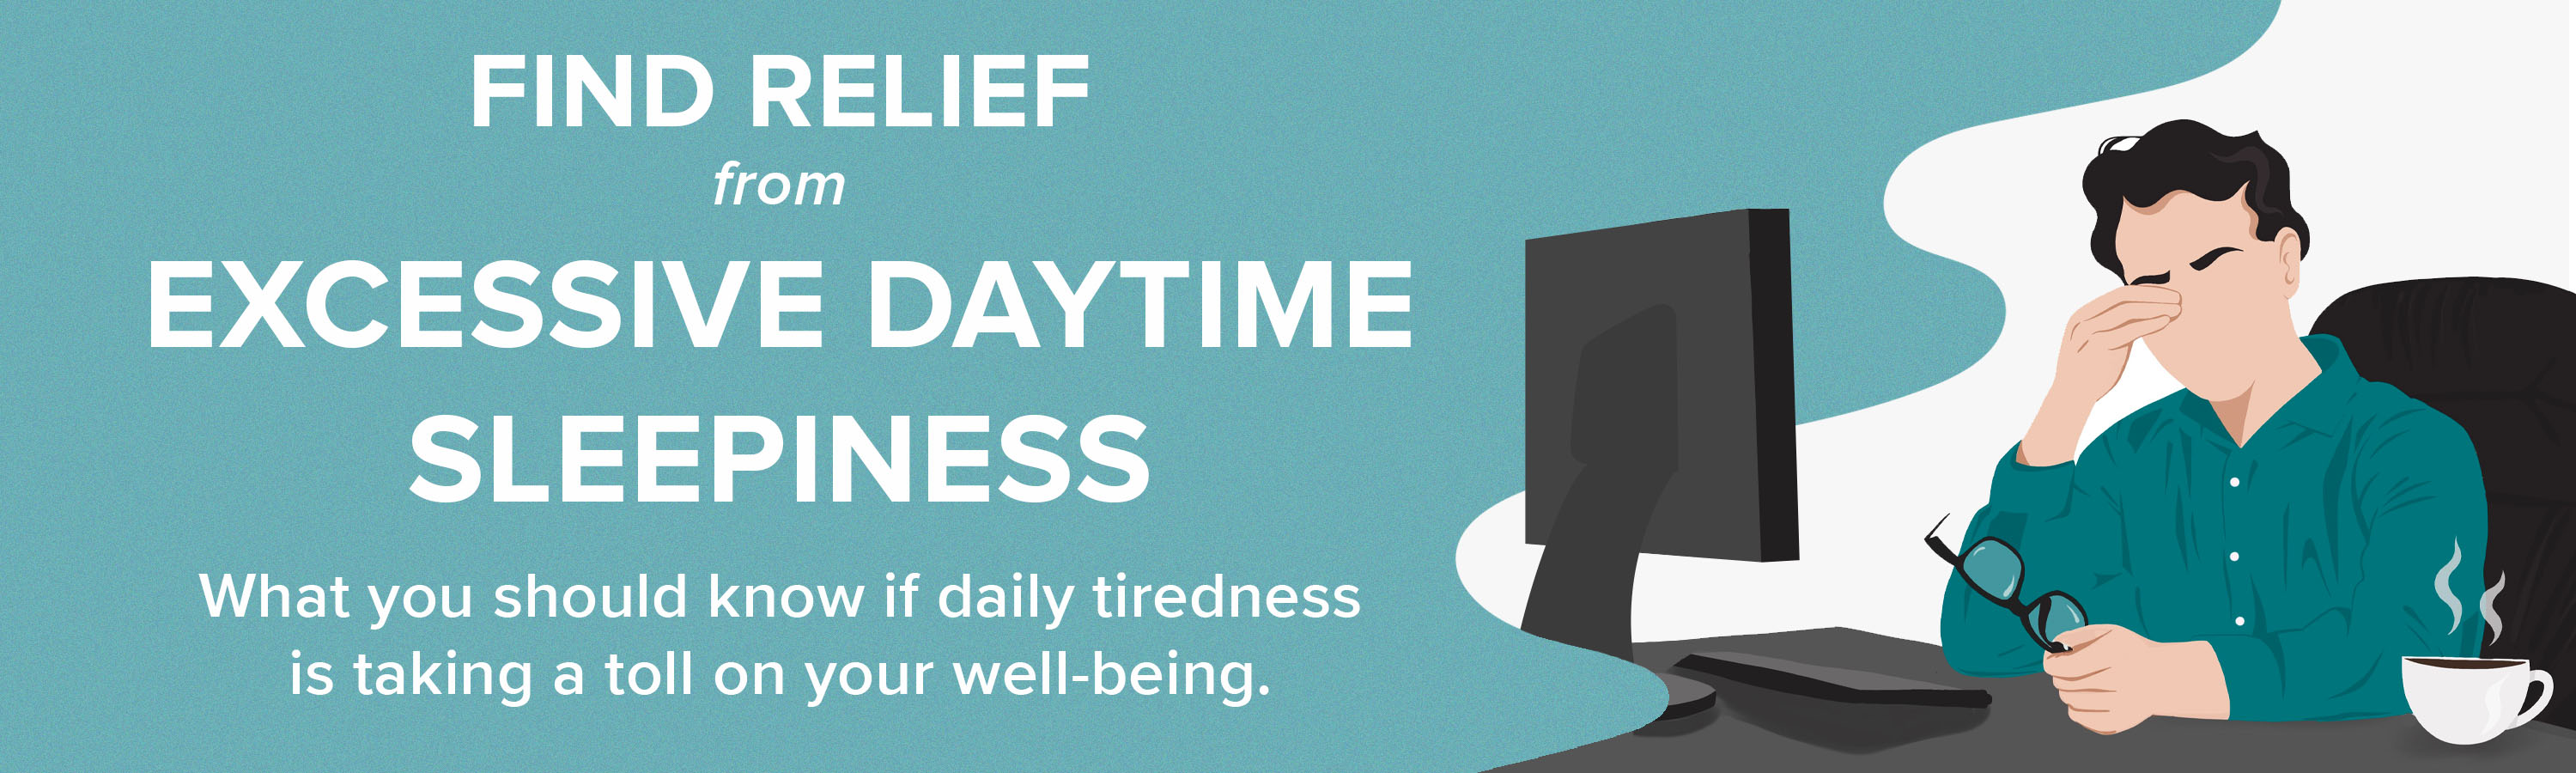 Find Relief from Excessive Daytime Sleepiness